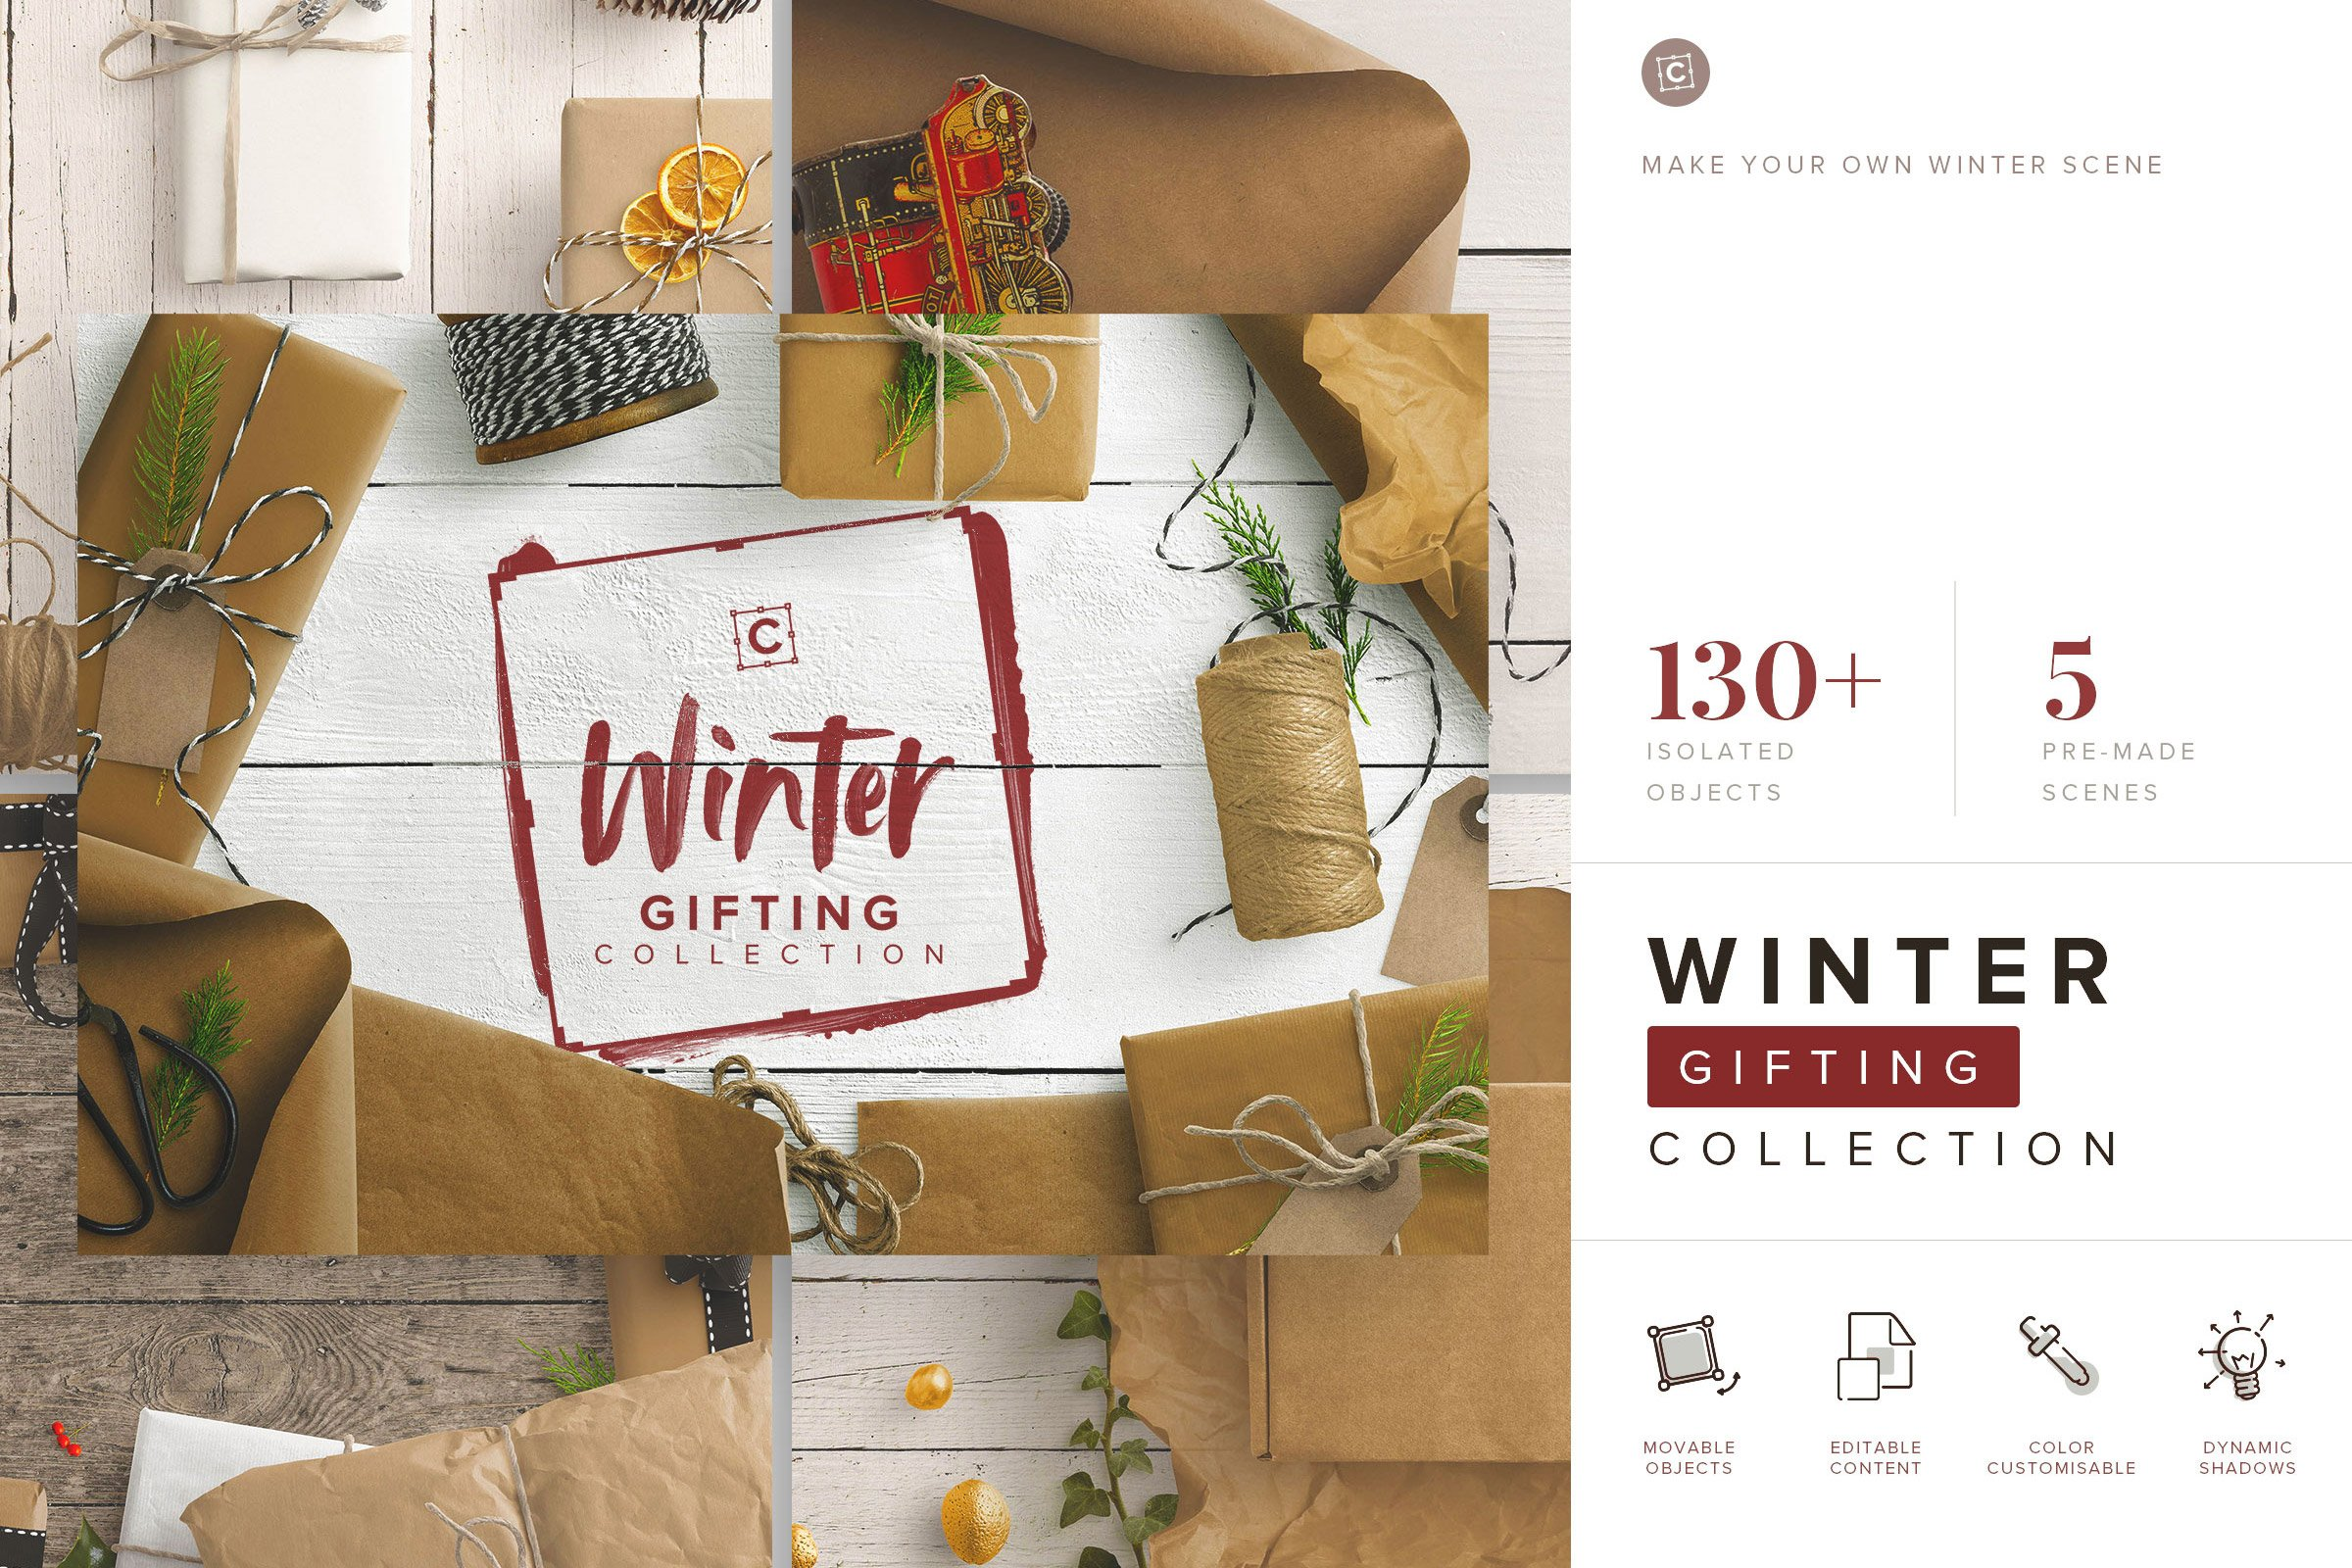 custom scene winter gifting collection cover